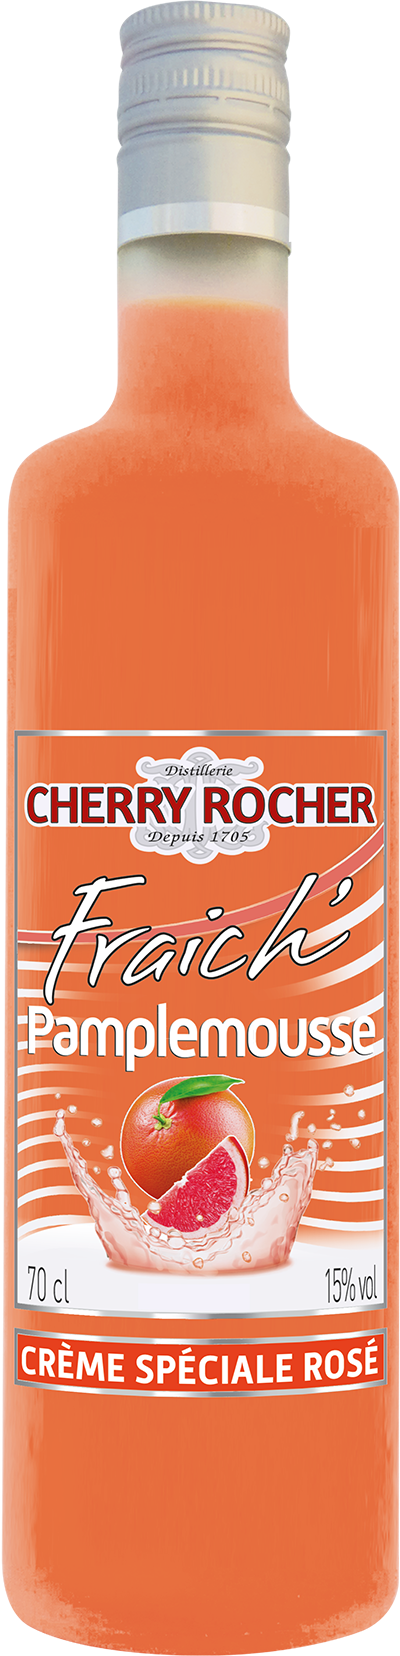 Fraich' Pamplemousse - Cherry Rocher